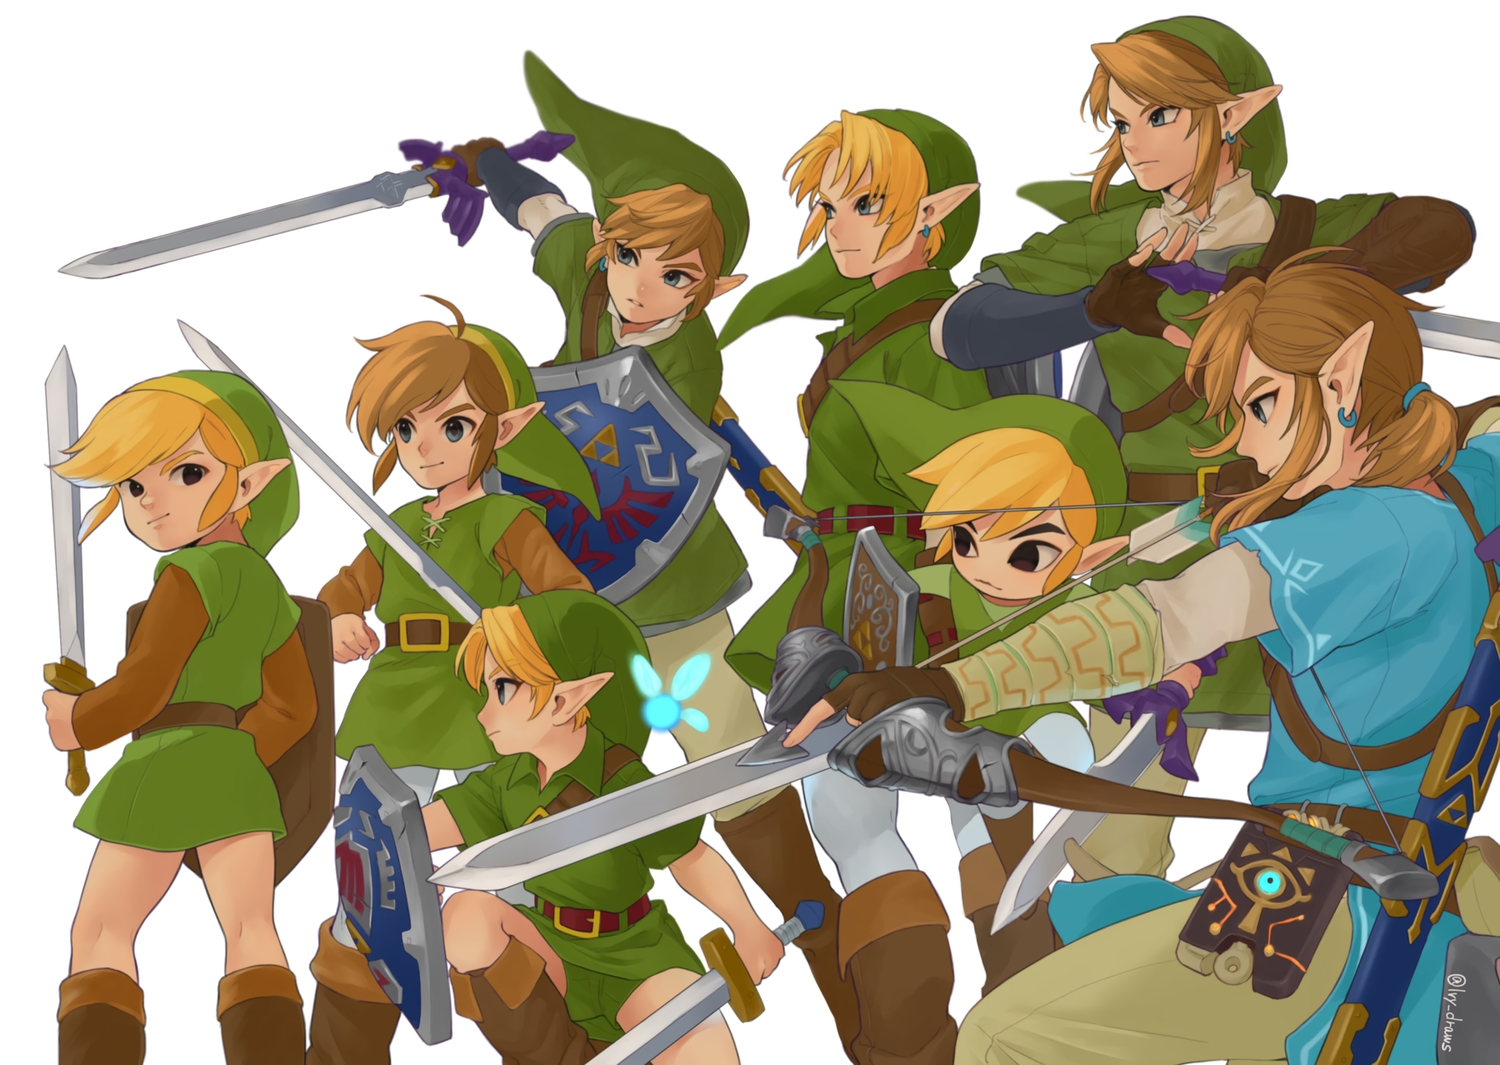 all_male black_eyes blonde_hair blue_eyes boots bow_(weapon) brown_hair chibi computer elbow_gloves fairy gloves group hat iva_(sena0119) link_(zelda) male navi pointed_ears short_hair signed sword the_legend_of_zelda weapon